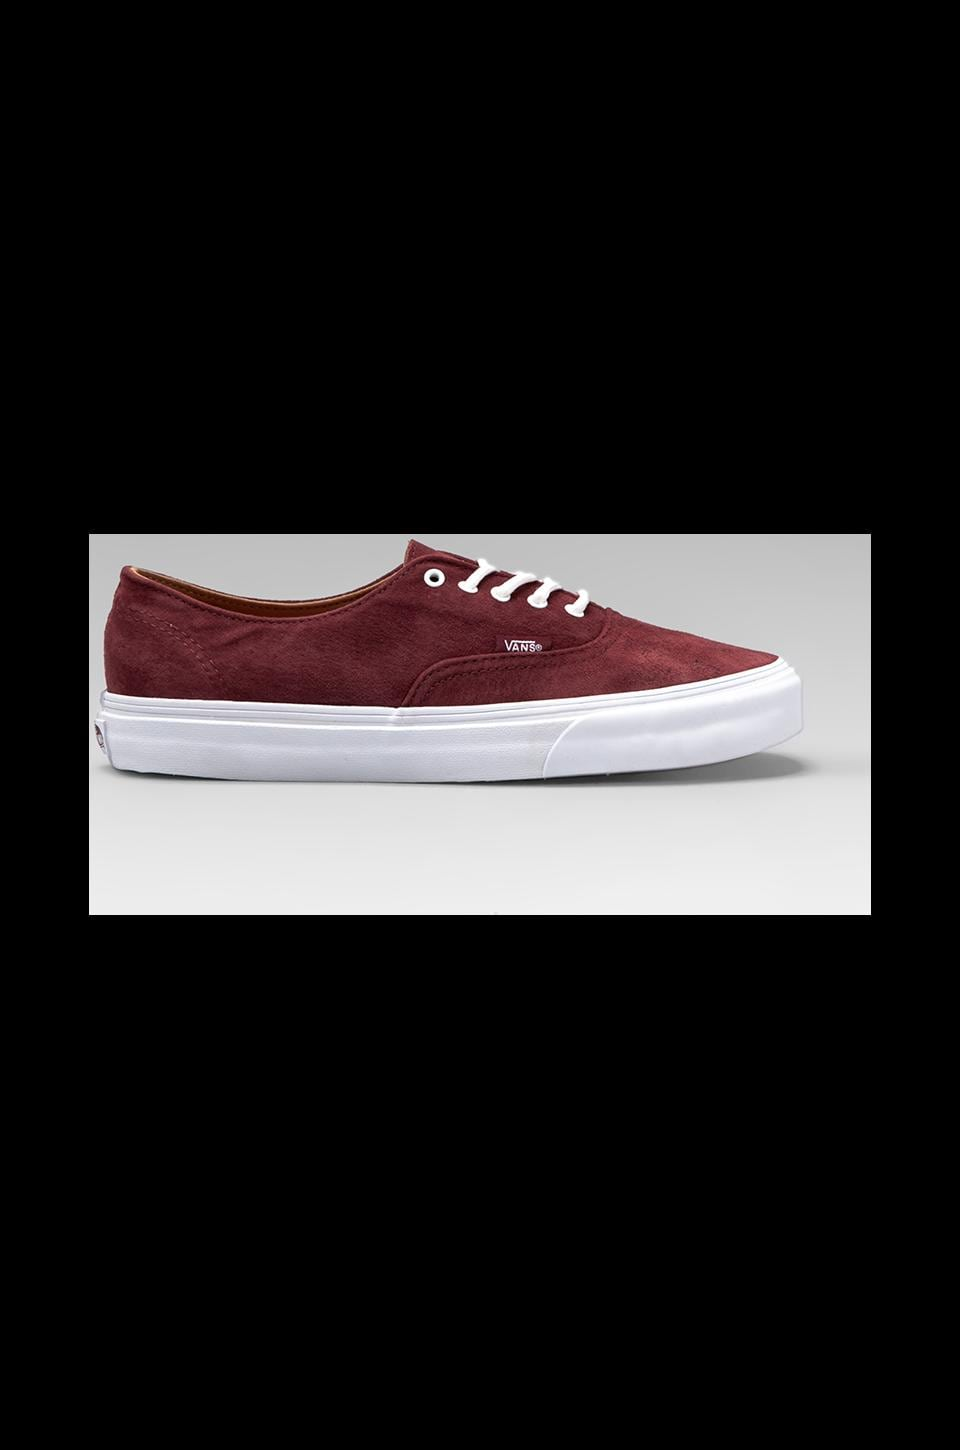 Vans California Authentic Decon Buck in Port Royale